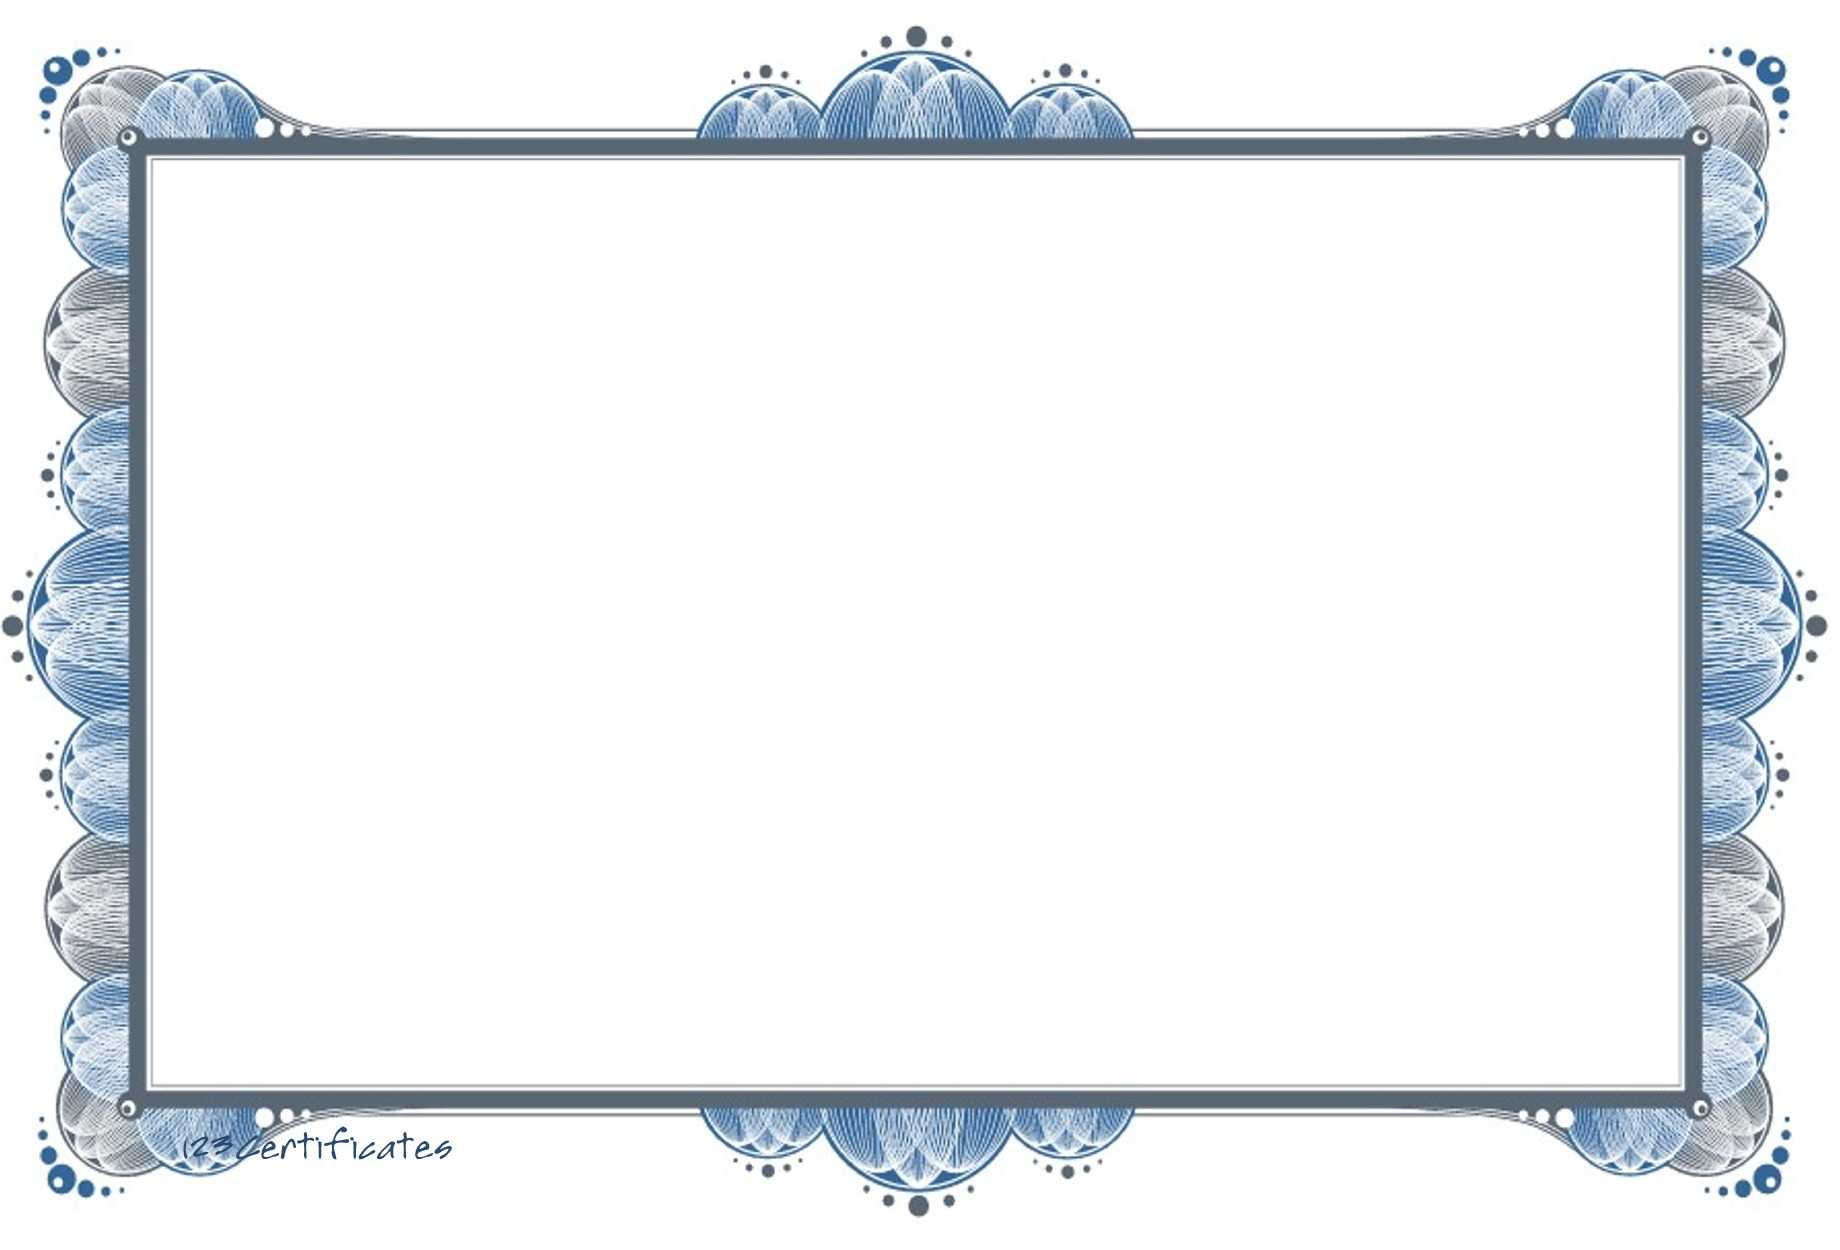 Free Certificate Border, Download Free Clip Art, Free Clip With Regard To Free Printable Certificate Border Templates